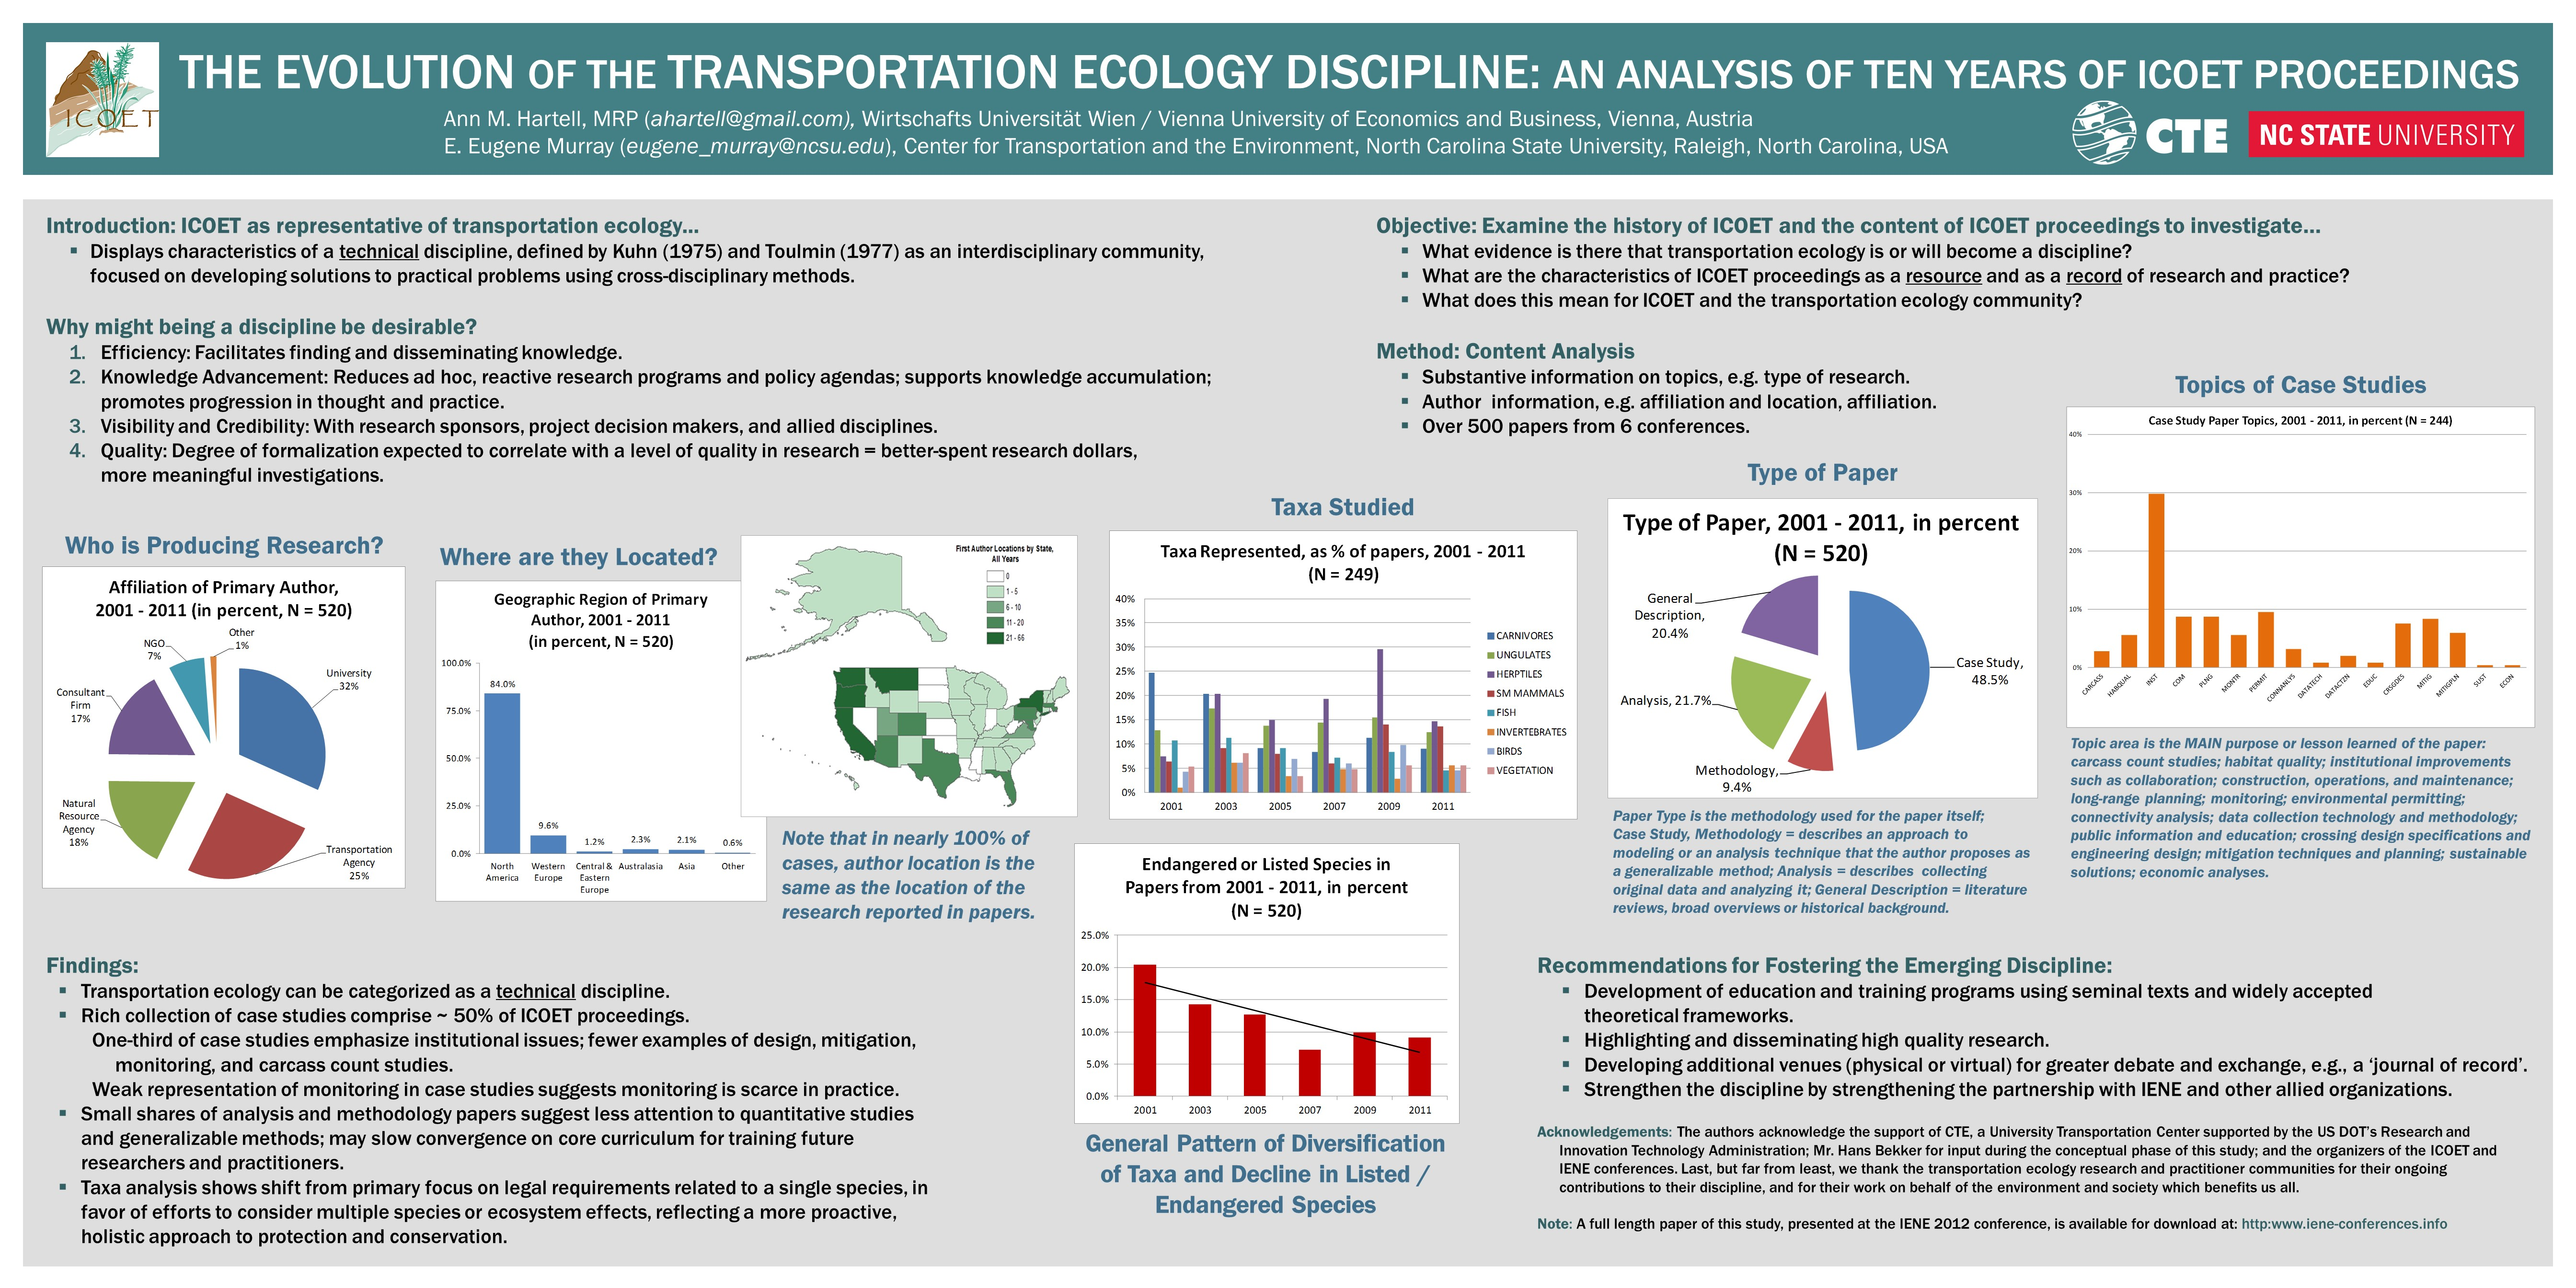 The Evolution of the Transportation Ecology Discipline: An Analysis of Ten Years of ICOET Proceedings